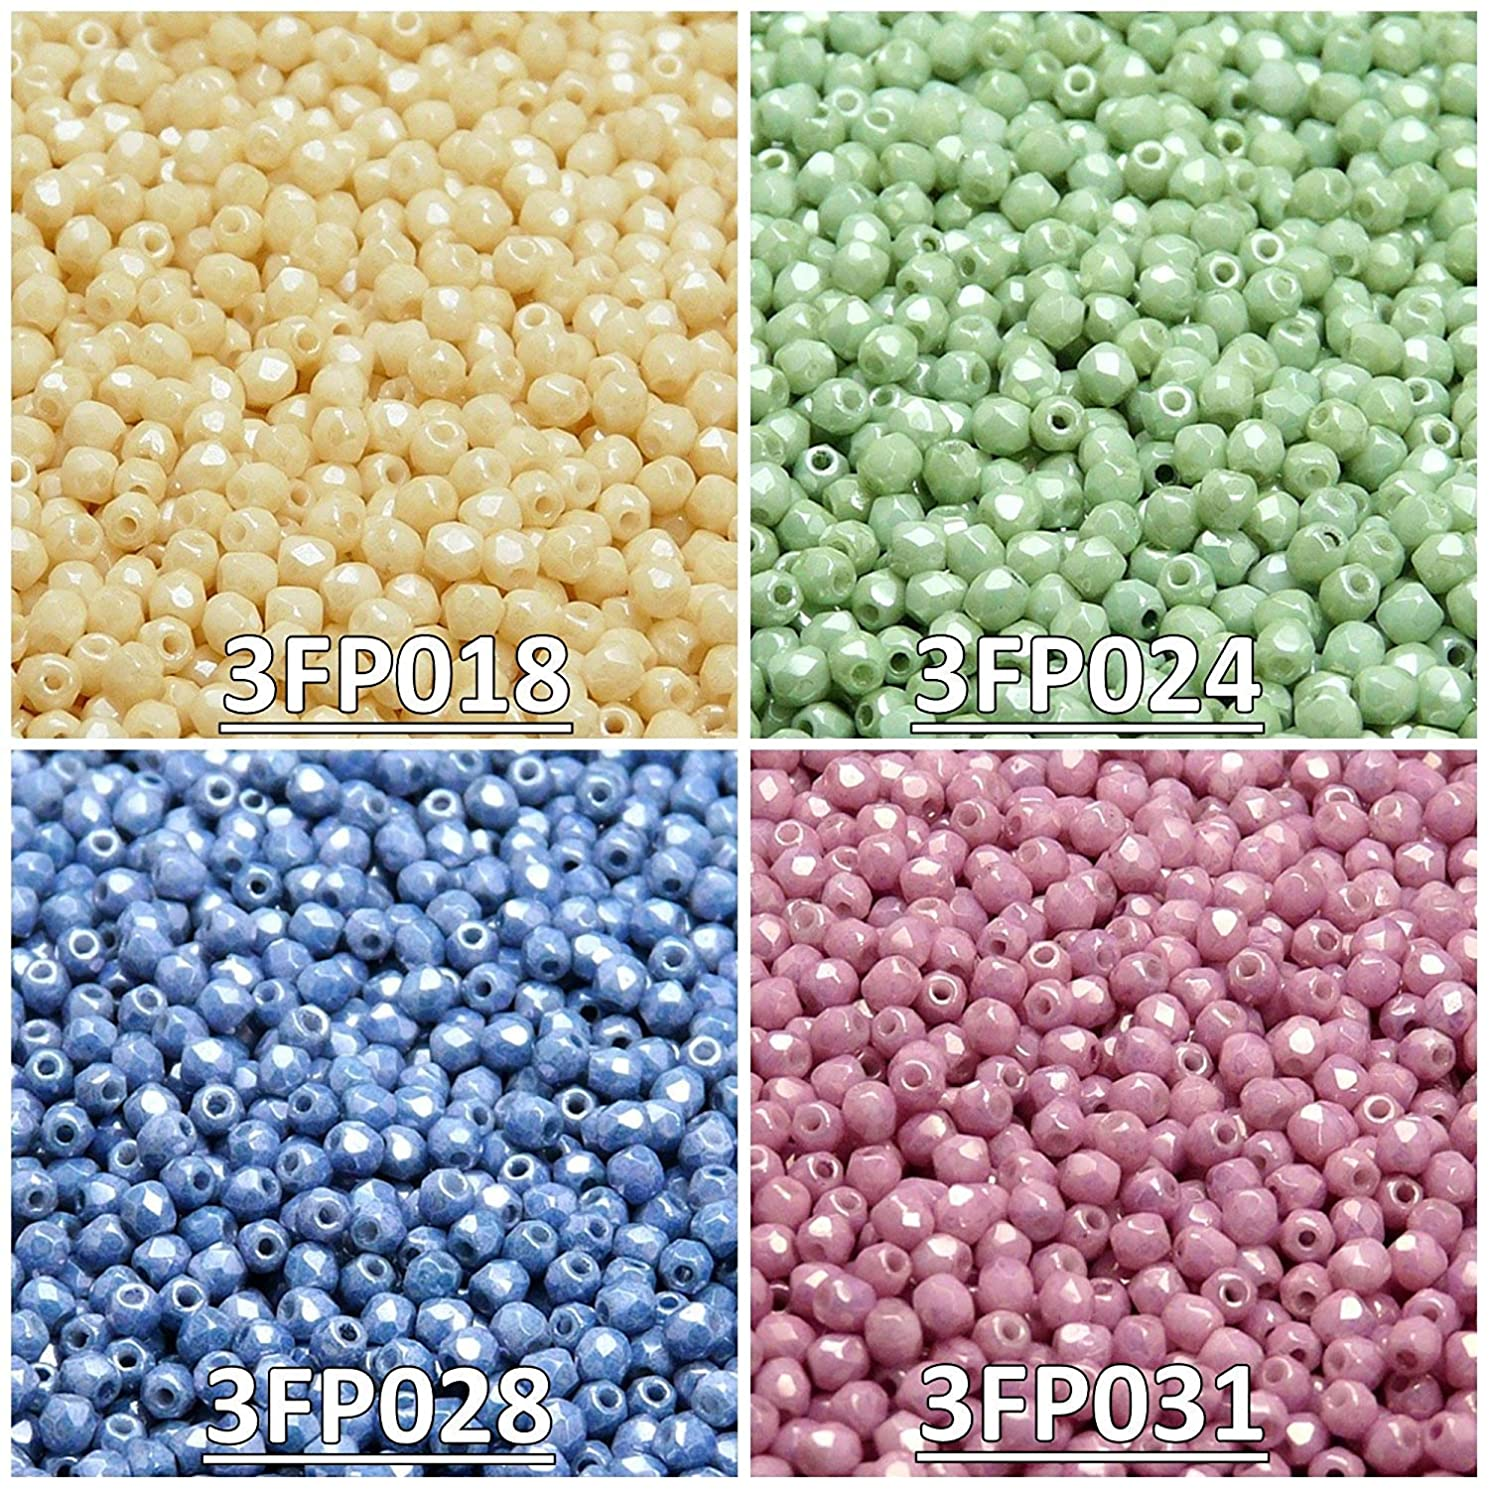 400 Beads 4 Colors Czech Fire-Polished Glass Beads Round 3 mm, Set 330 (3FP018 3FP024 3FP028 3FP031)